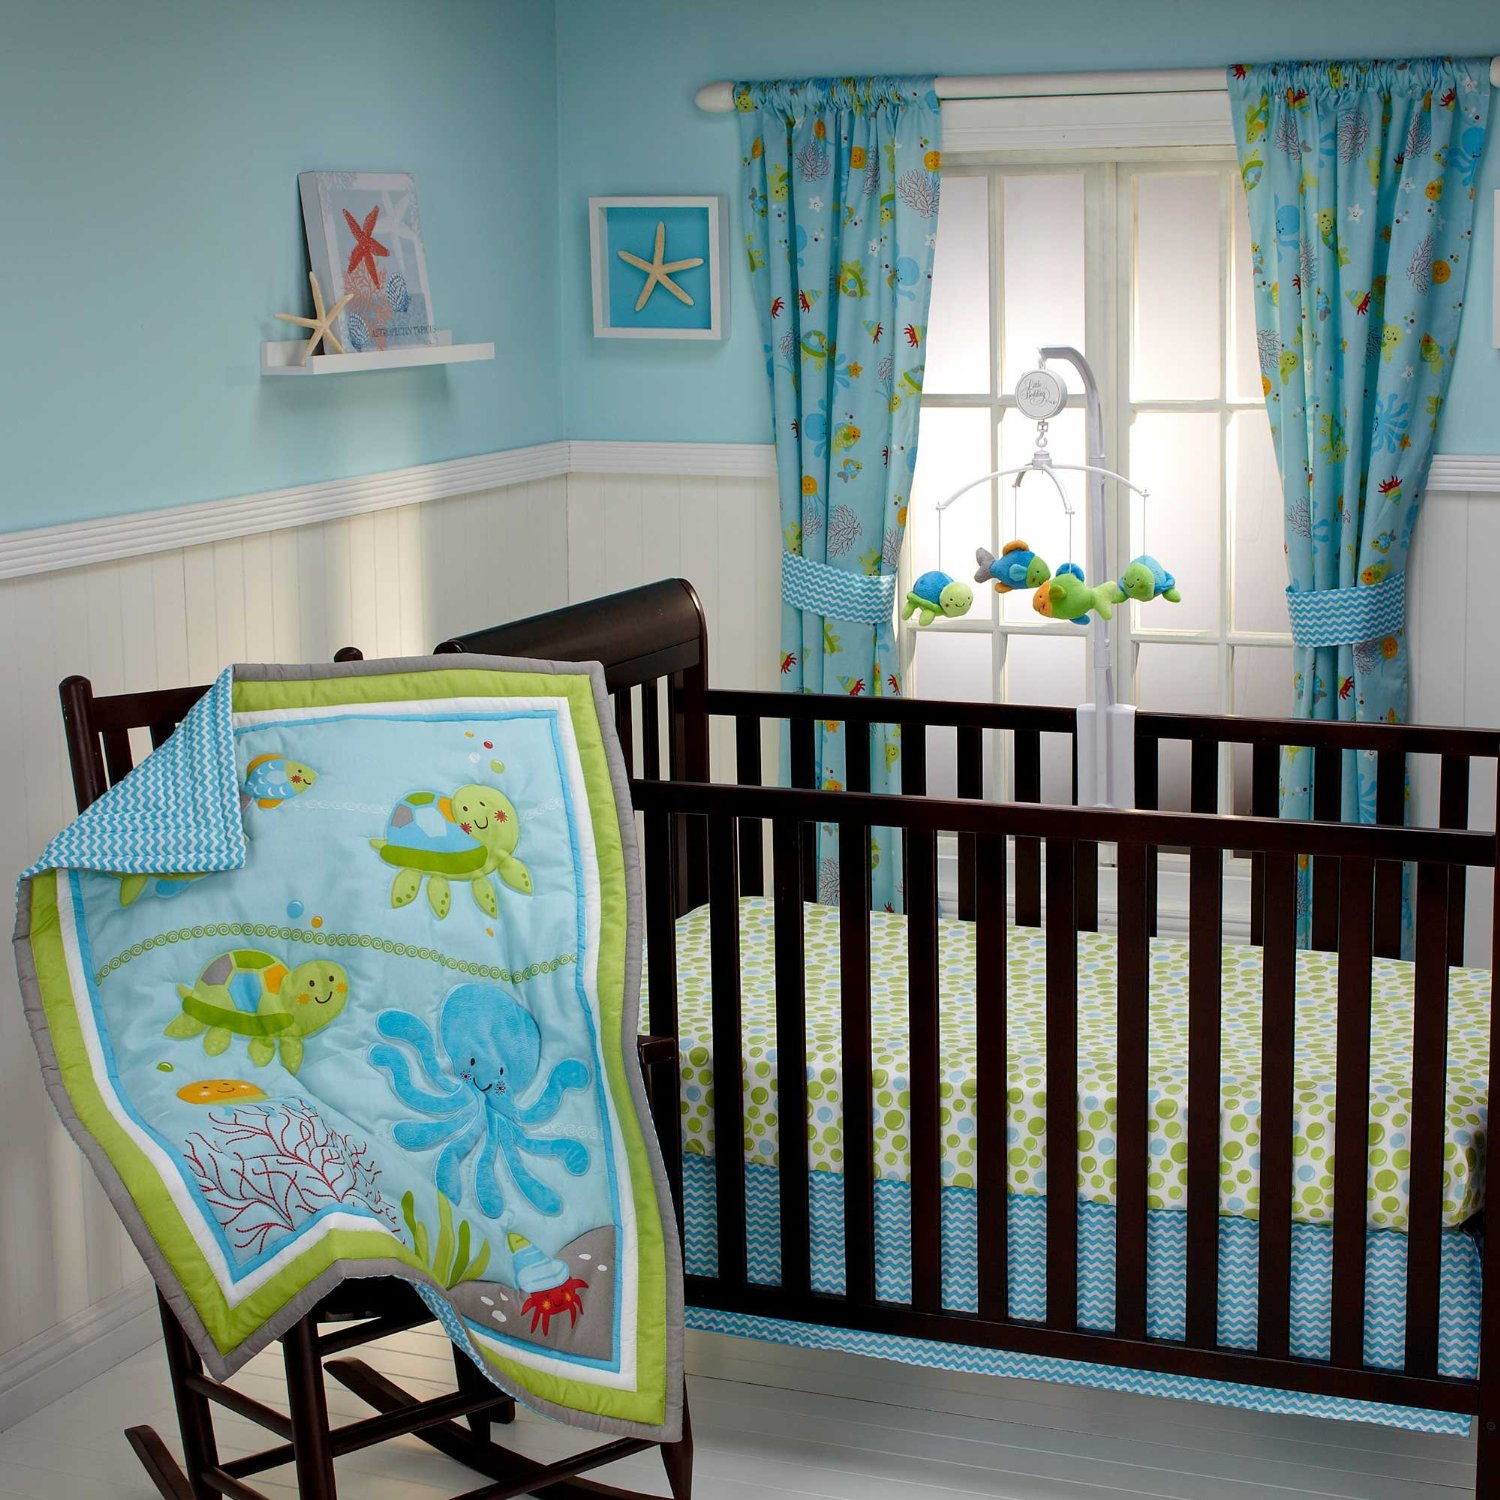 Baby bedding set with under the sea creatures for a baby boy nursery